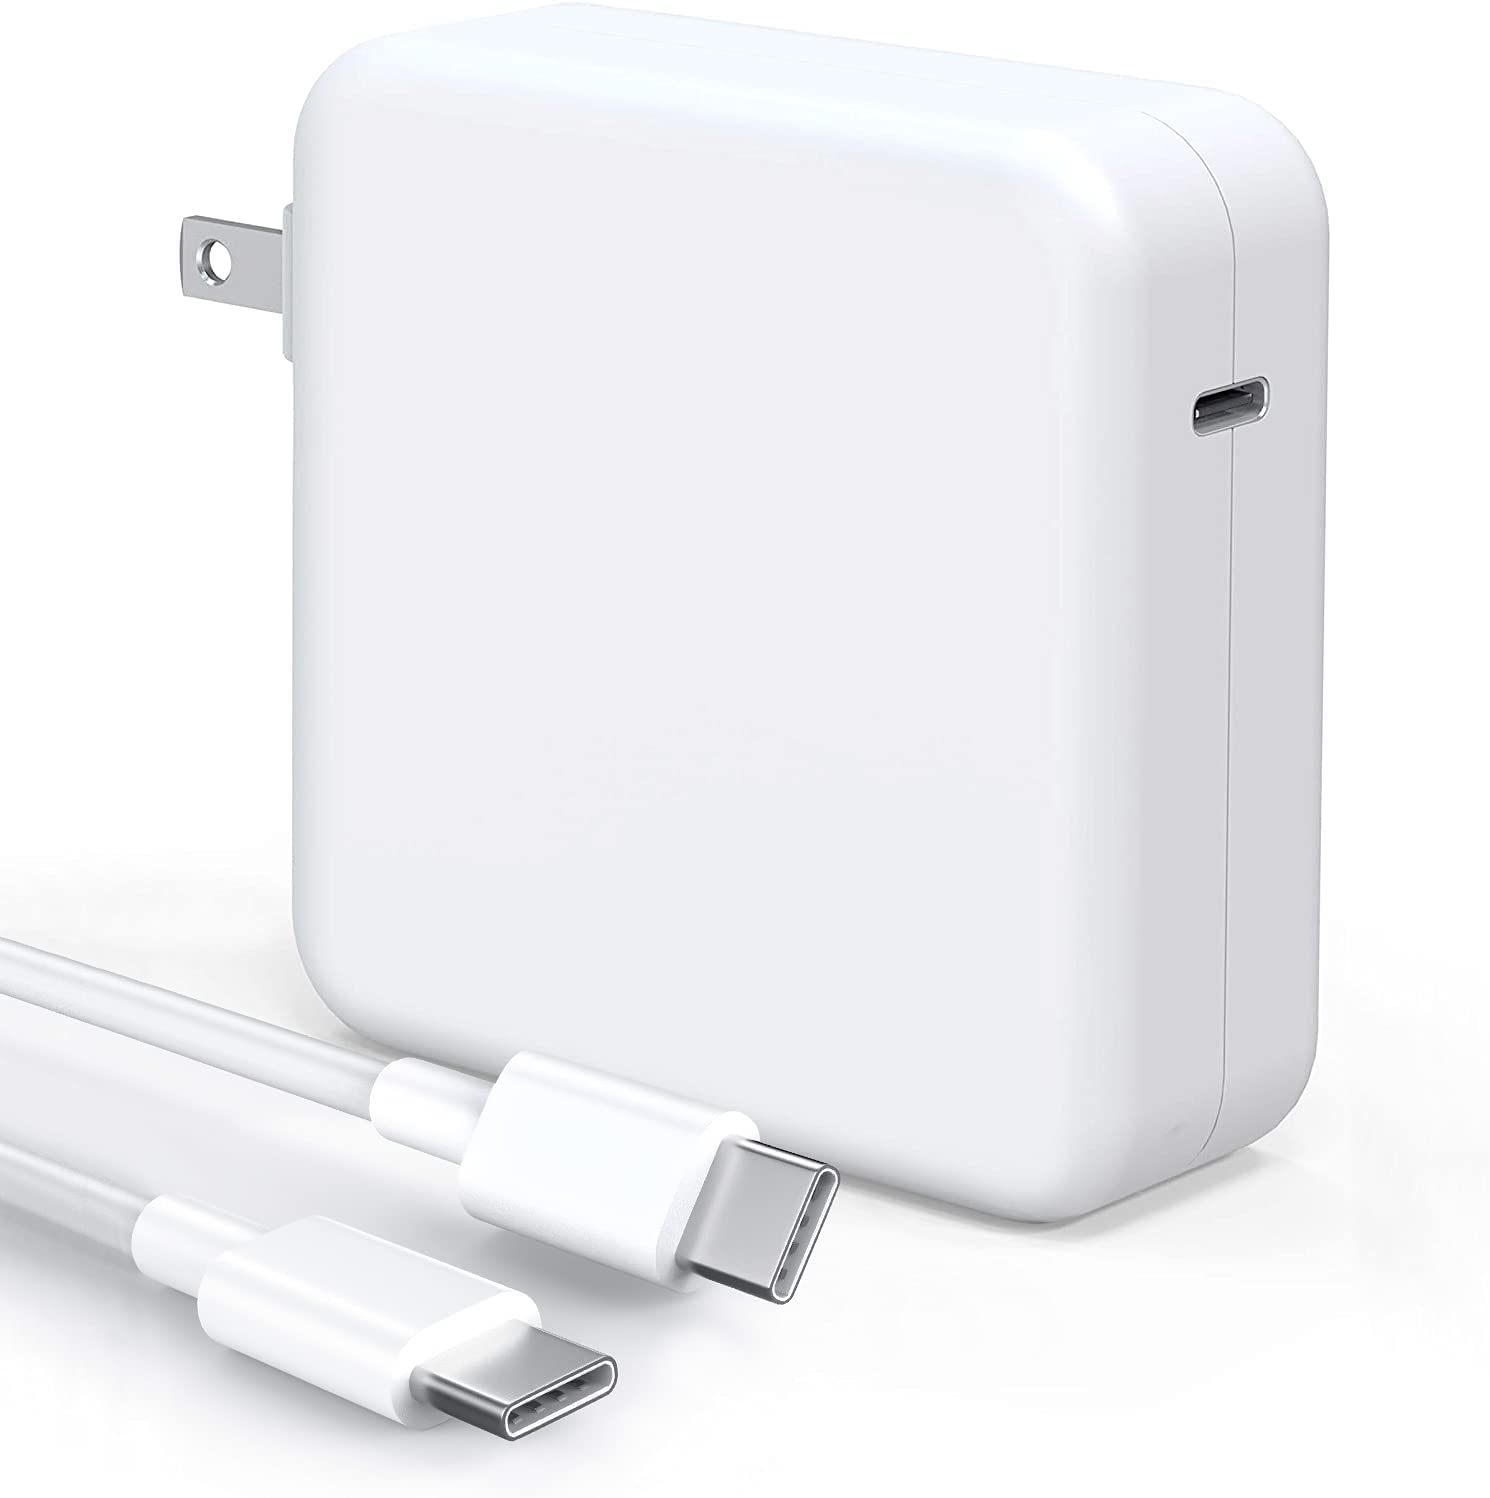 Mac Book Pro Charger - 100W USB C Charger Power Adapter Compatible with MacBook Pro 16, 15, 13 Inch, MacBook Air 13 Inch, iPad Pro 2020/2019/2018, Included 7.2ft USB C to C Cable